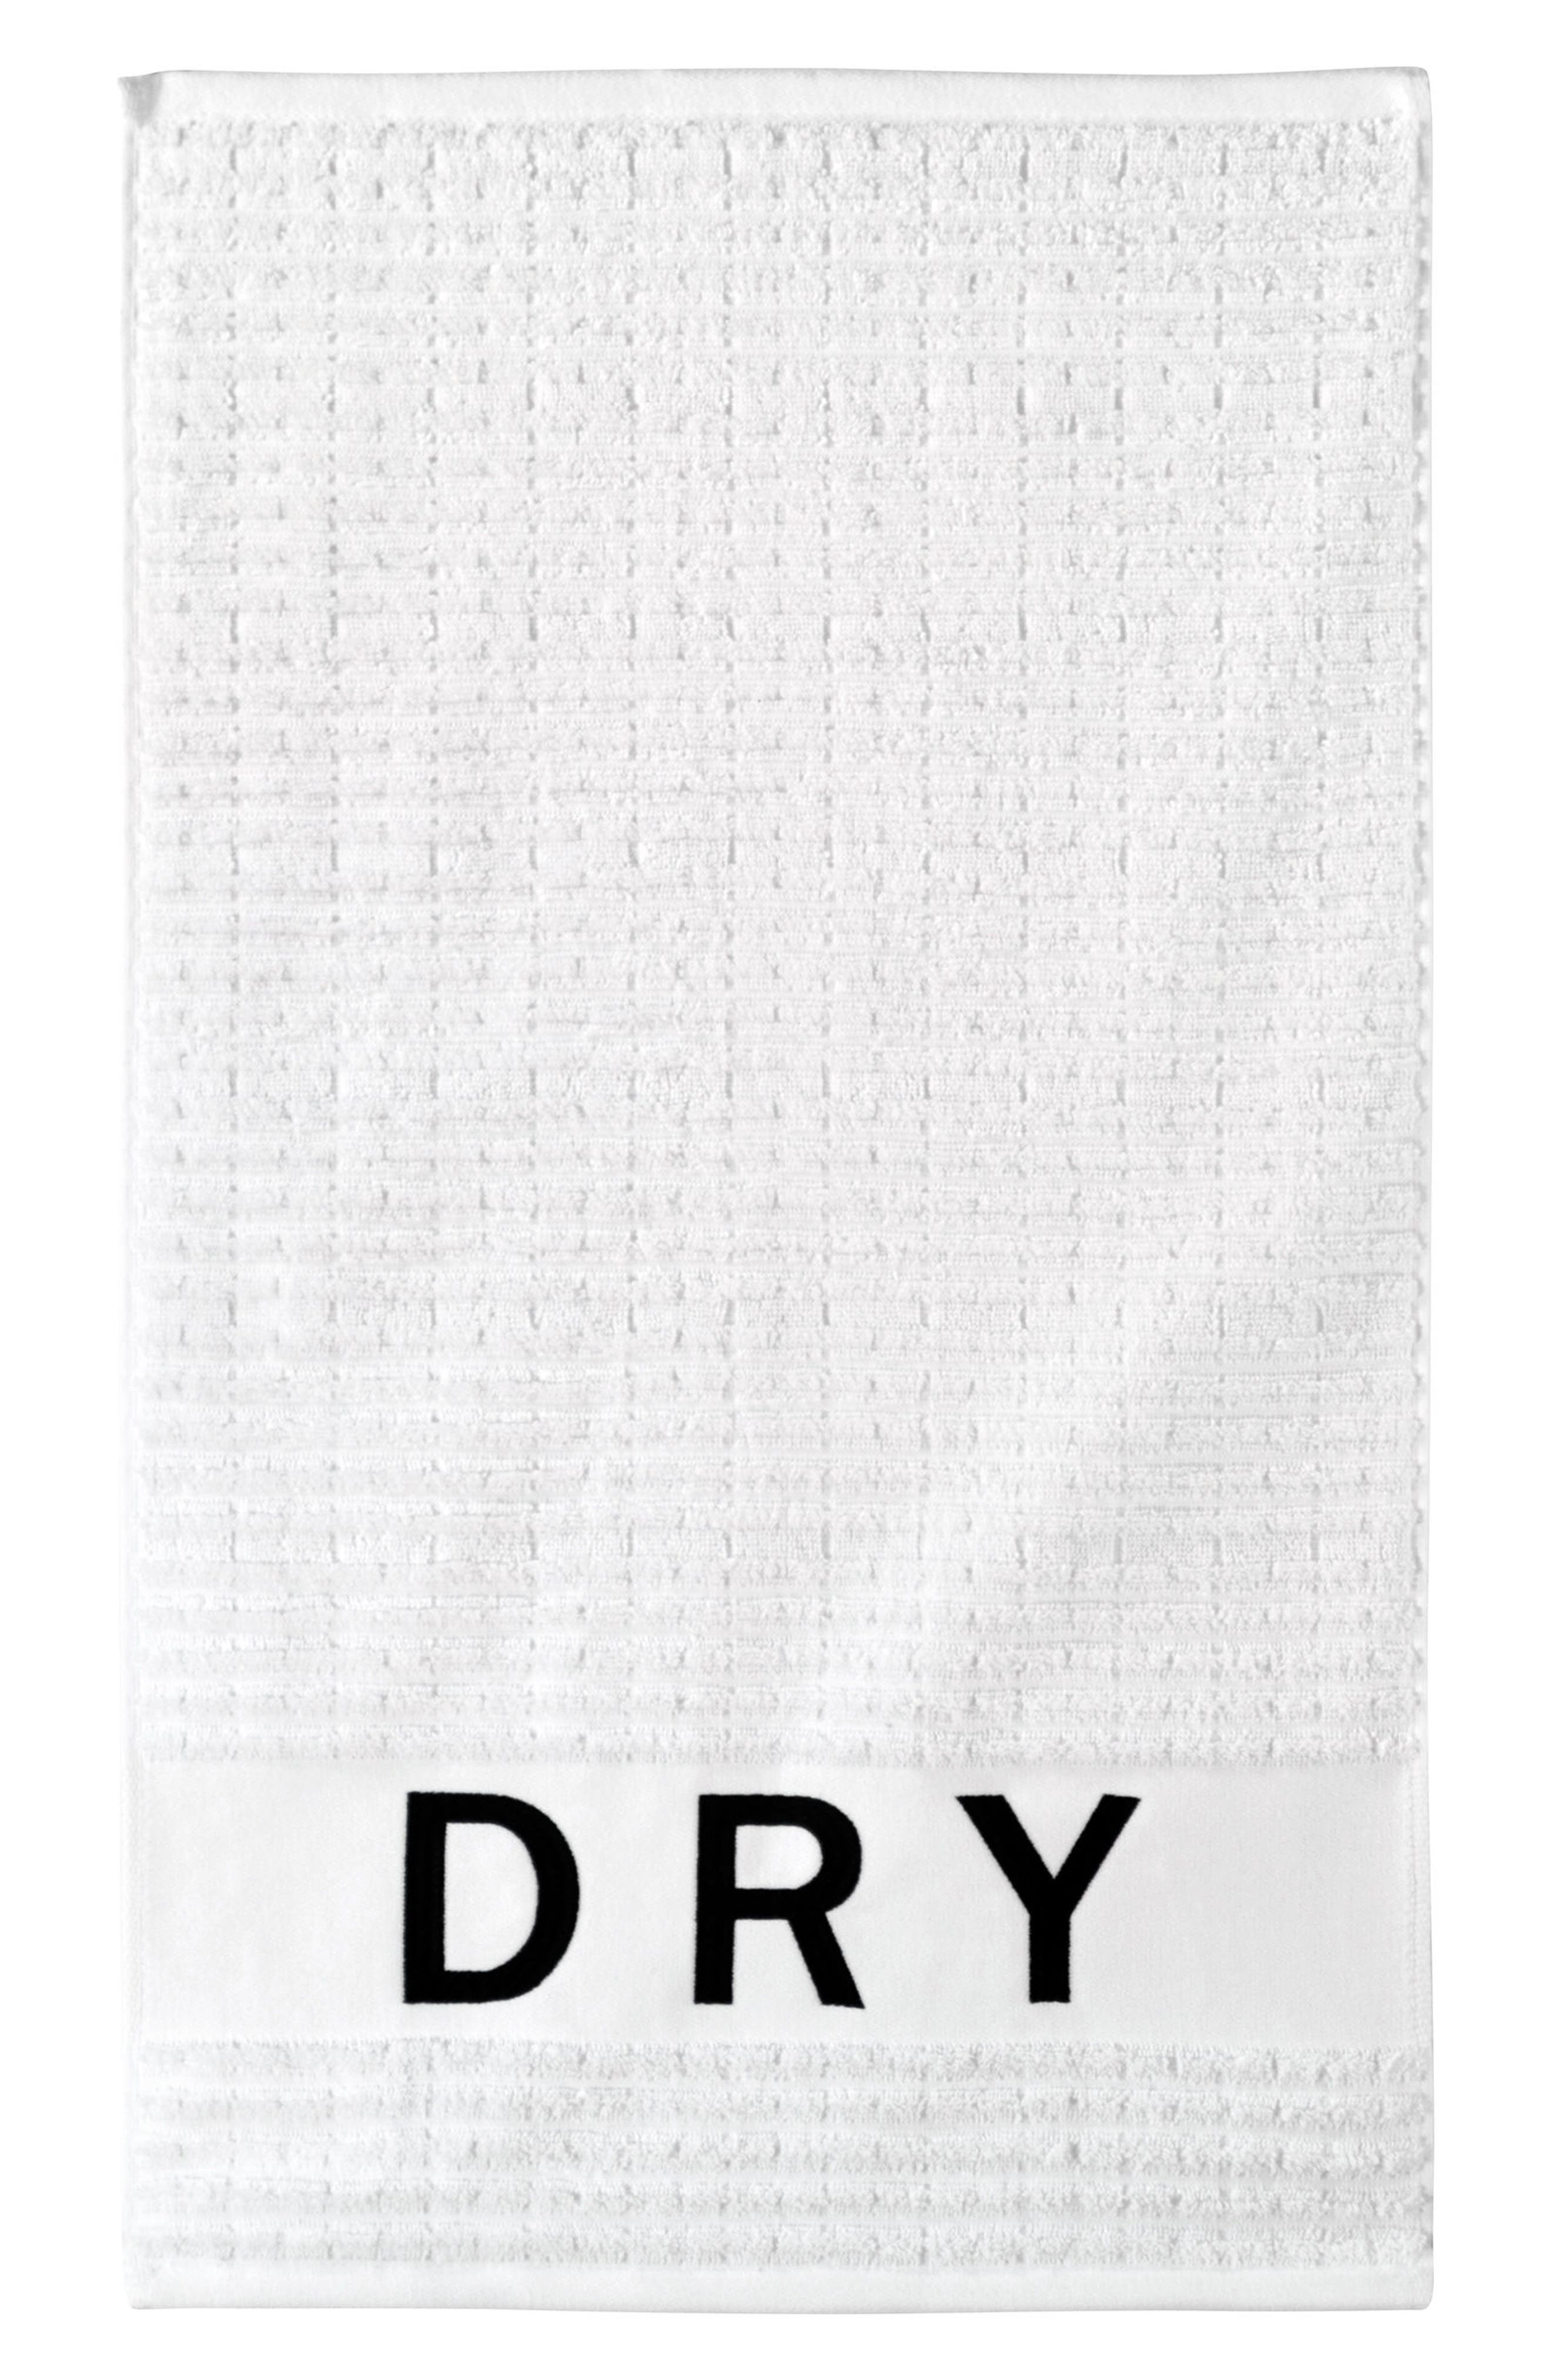 Dkny Chatter Set Of 3 Towels Size One Size  White